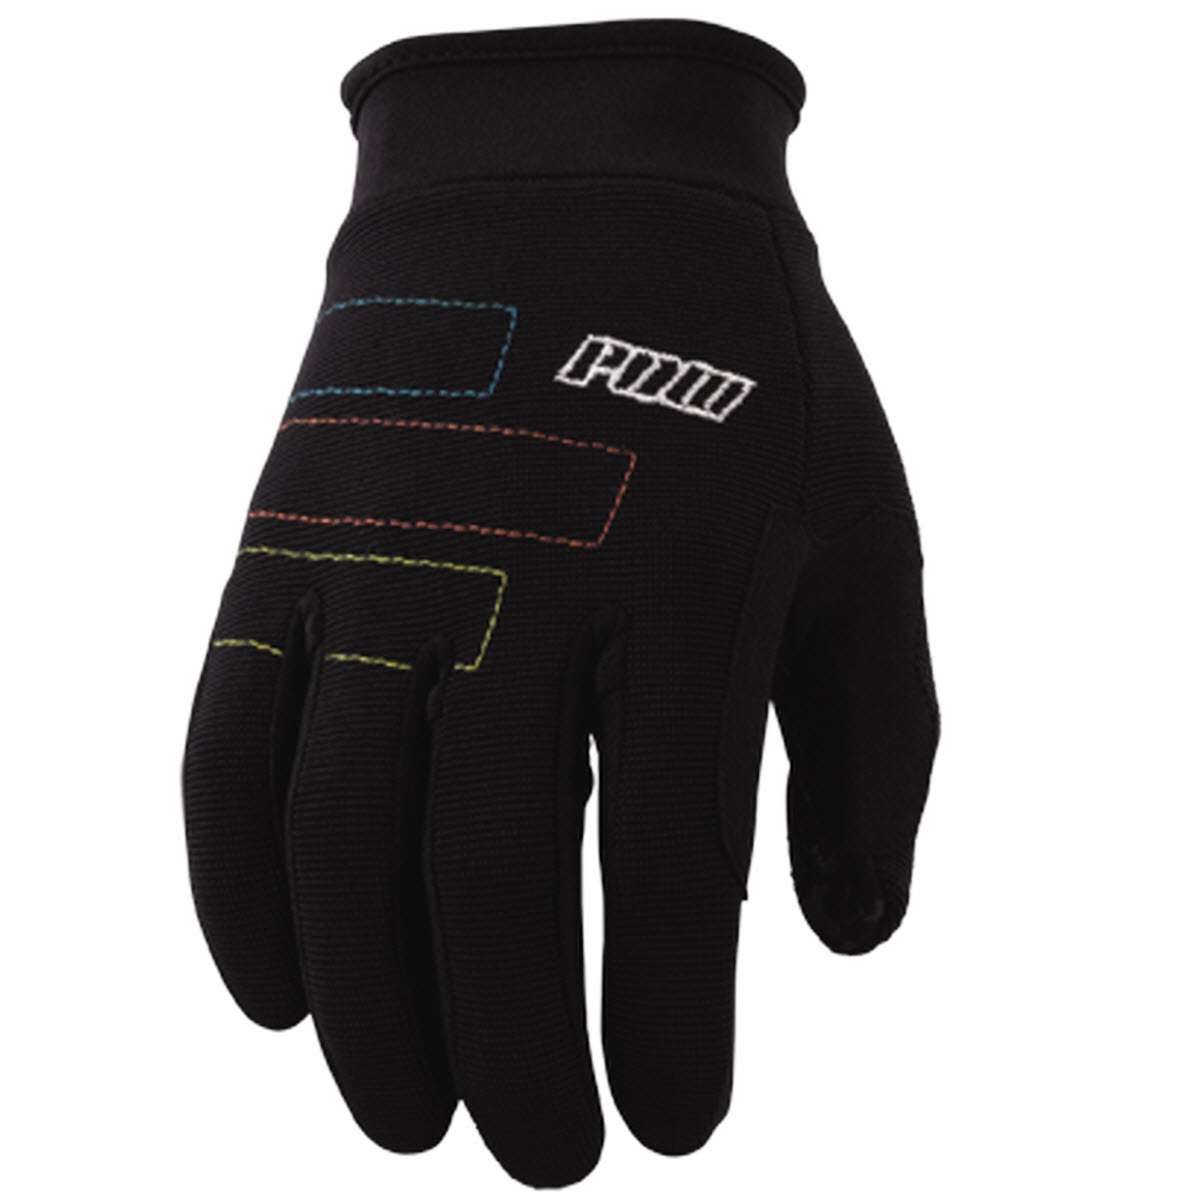 Pow High 5 Snowboard Pipe Gloves 2013 Black Large